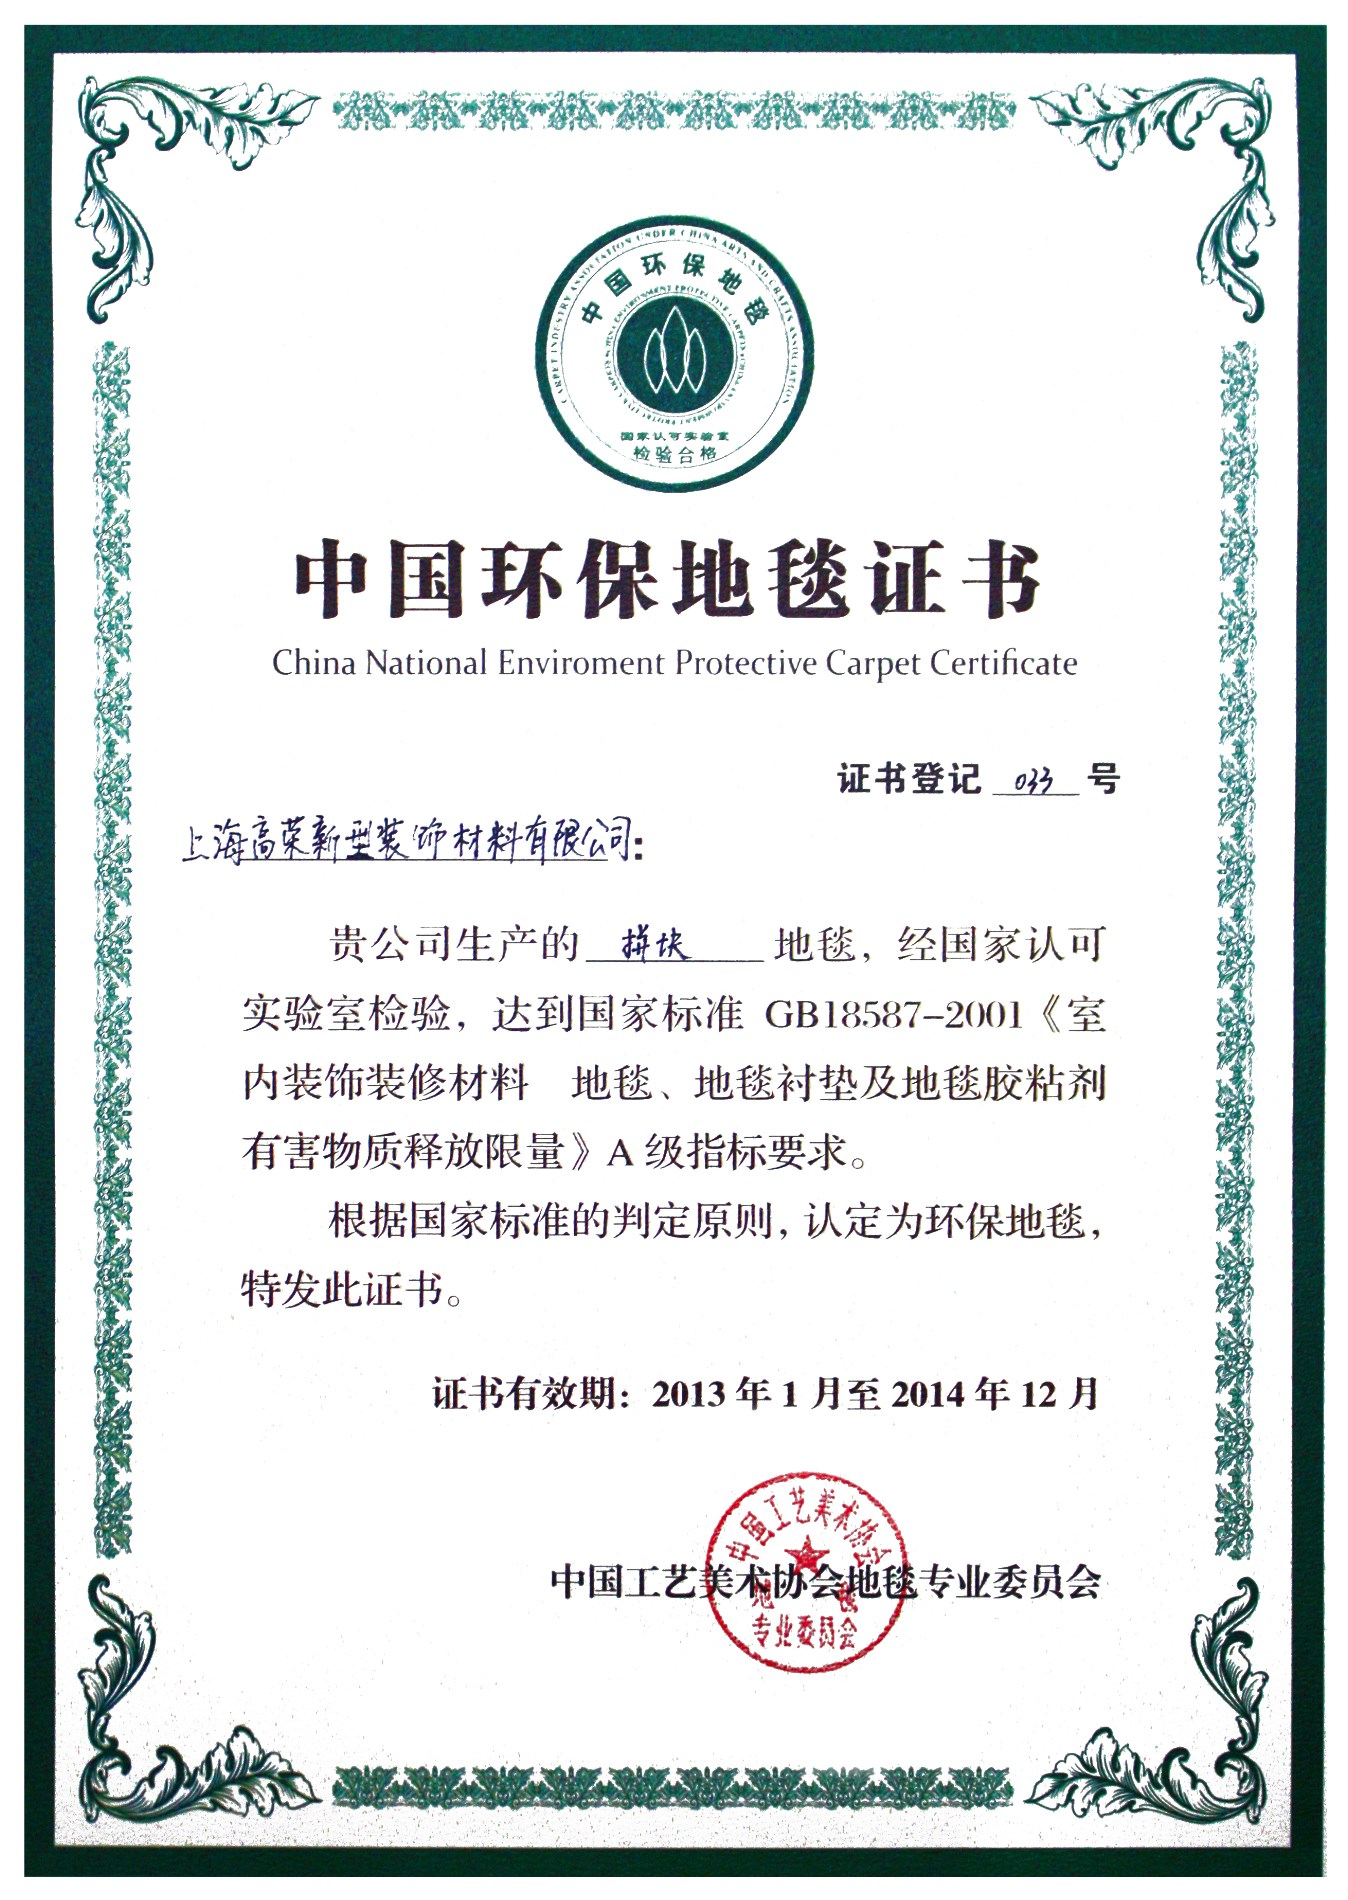 China National Environment Protective Carpet Certificate